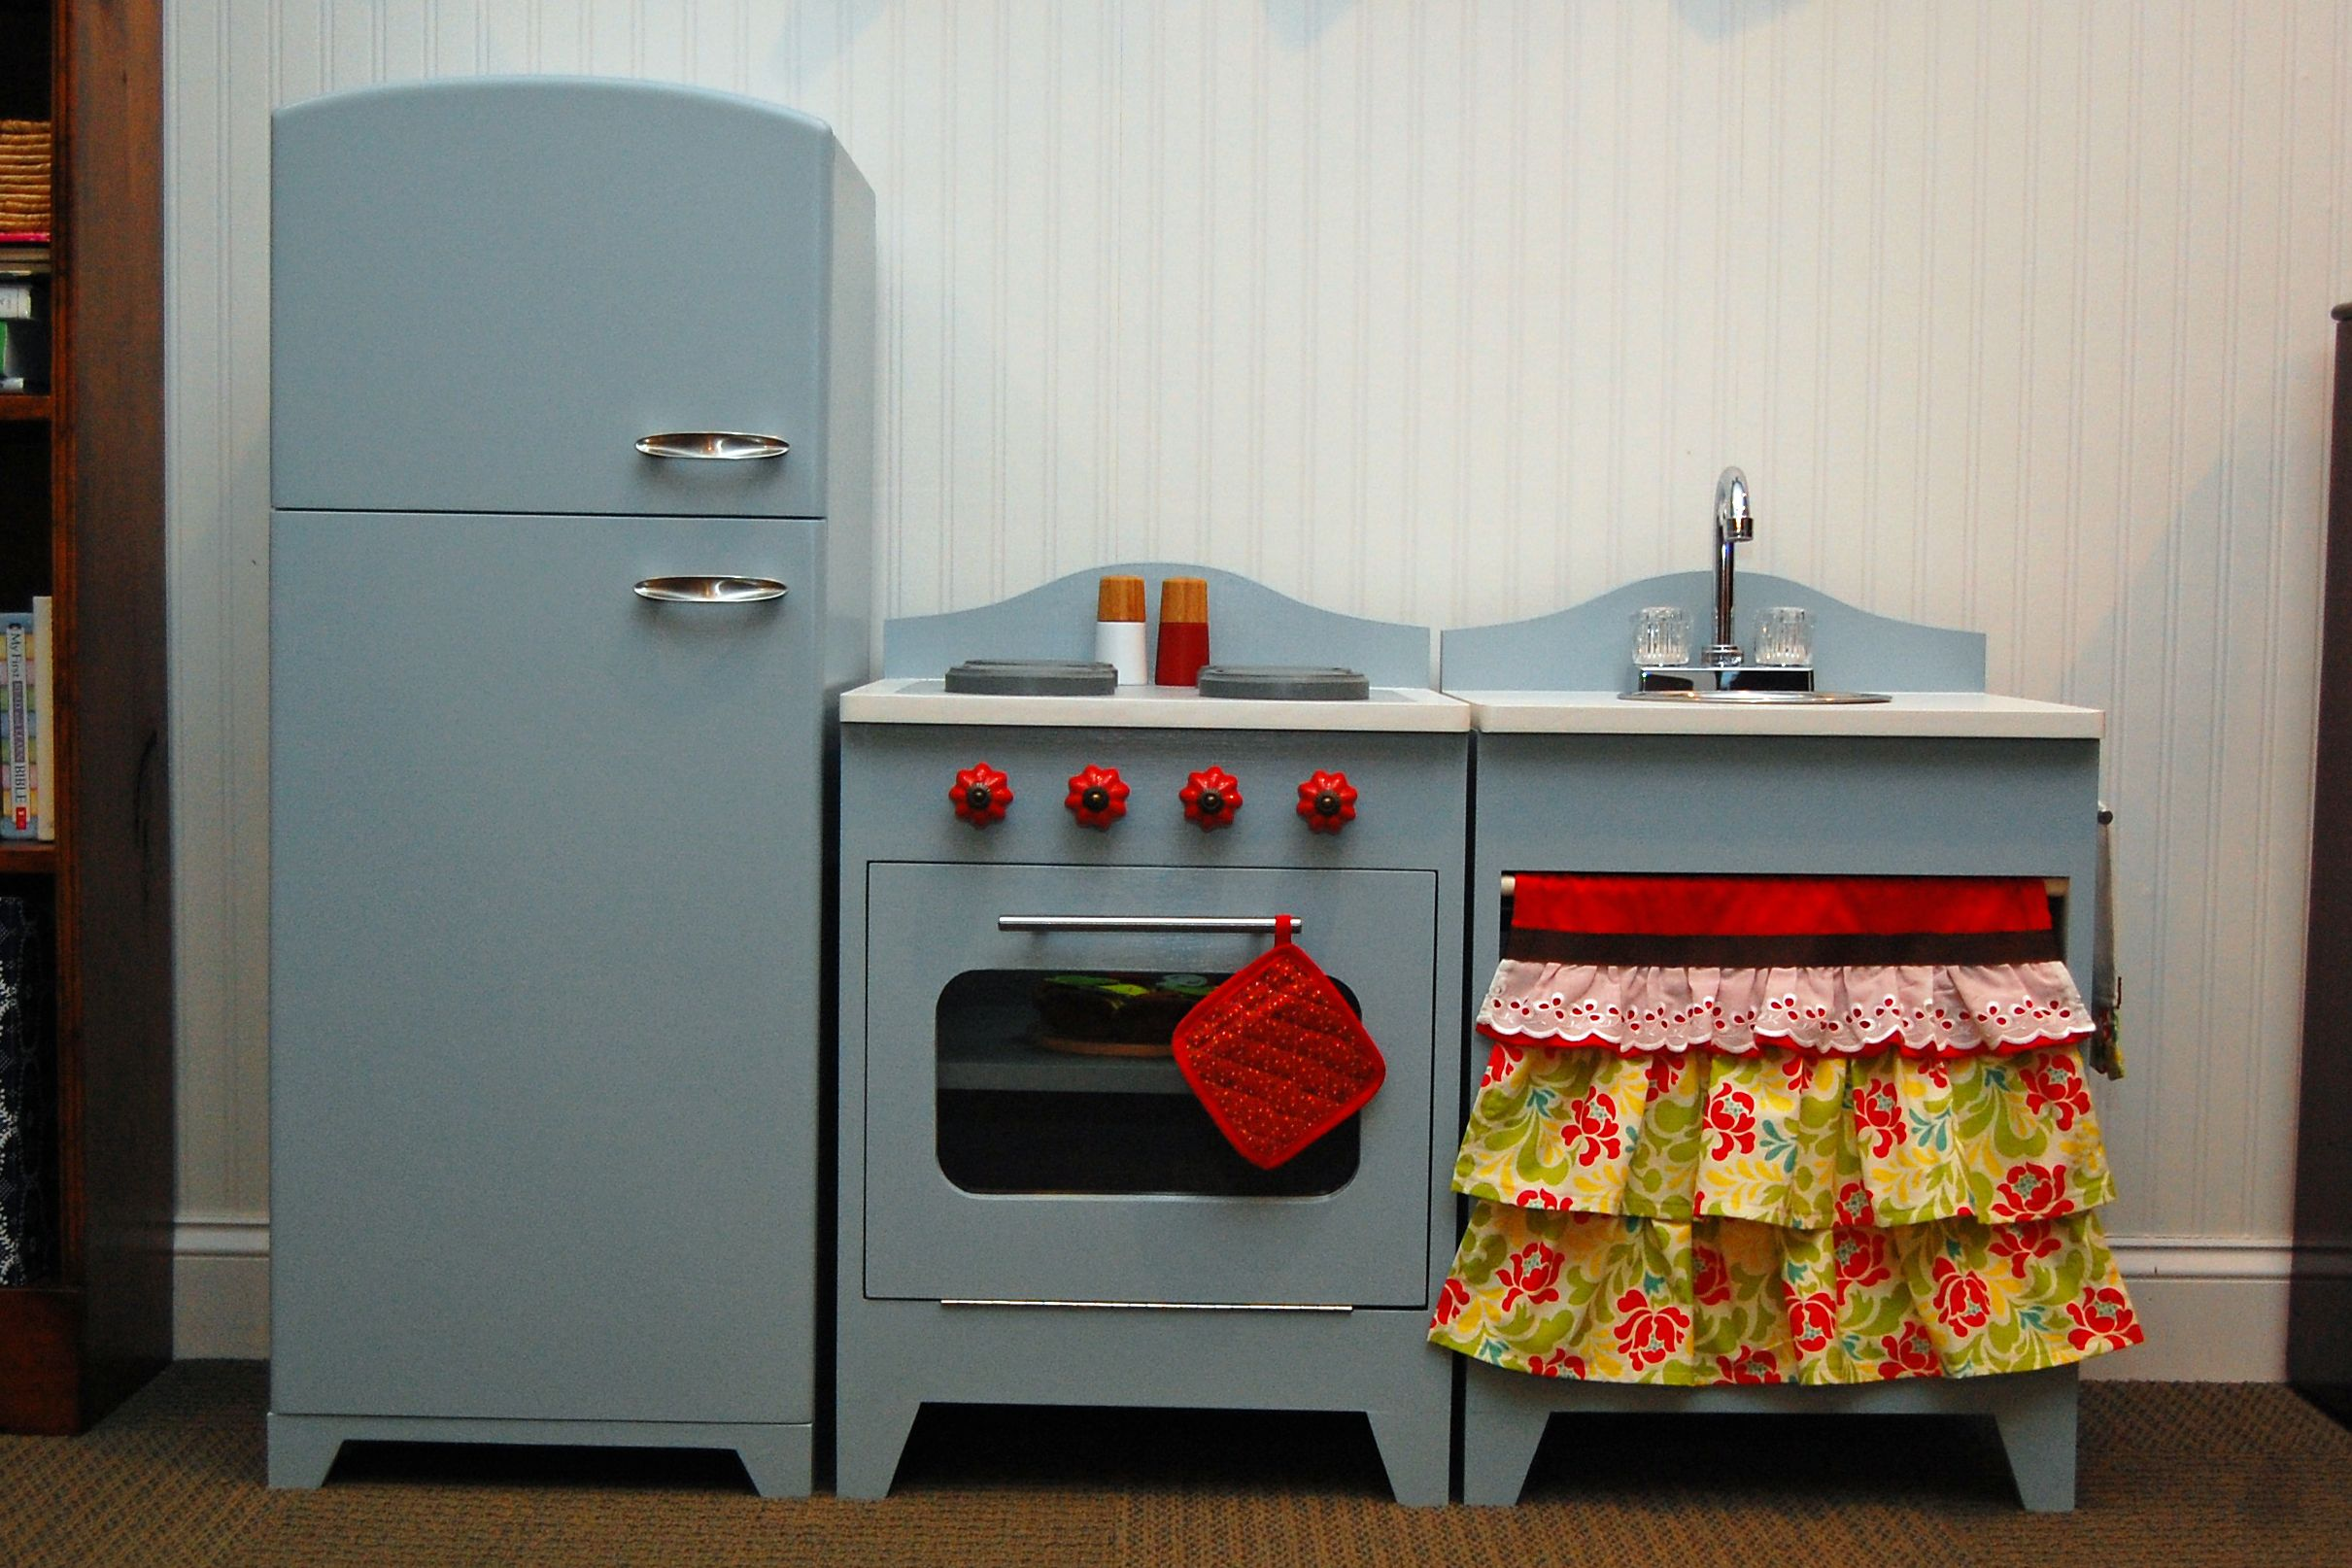 Diy Play Kitchen With Running Water Oven And Sink Were Inspired By Play Kitchens Built By Blueeyedyonder Blogsp Diy Play Kitchen Play Kitchen Kids Play Spaces